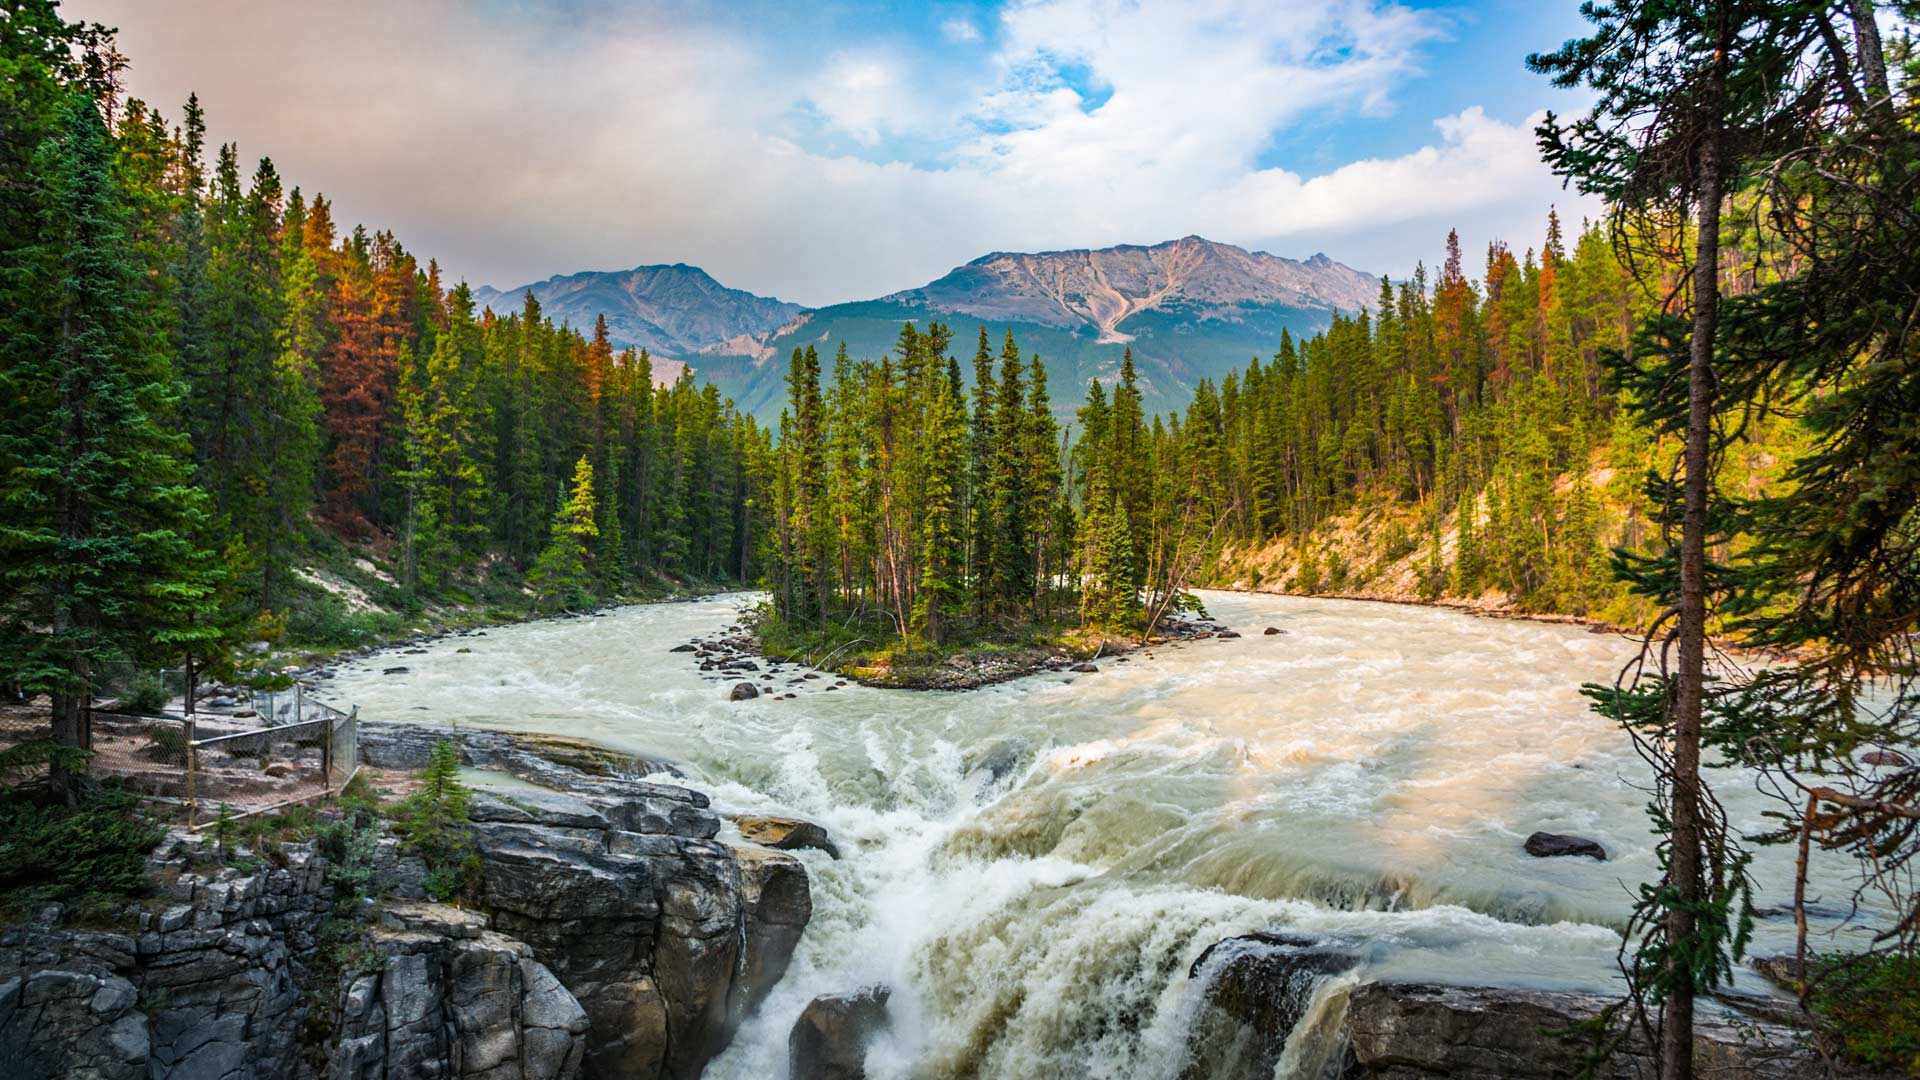 Sunwapta Falls in Jasper National Park, Canada (© Schroptschop/Getty Images) - Calf Blog